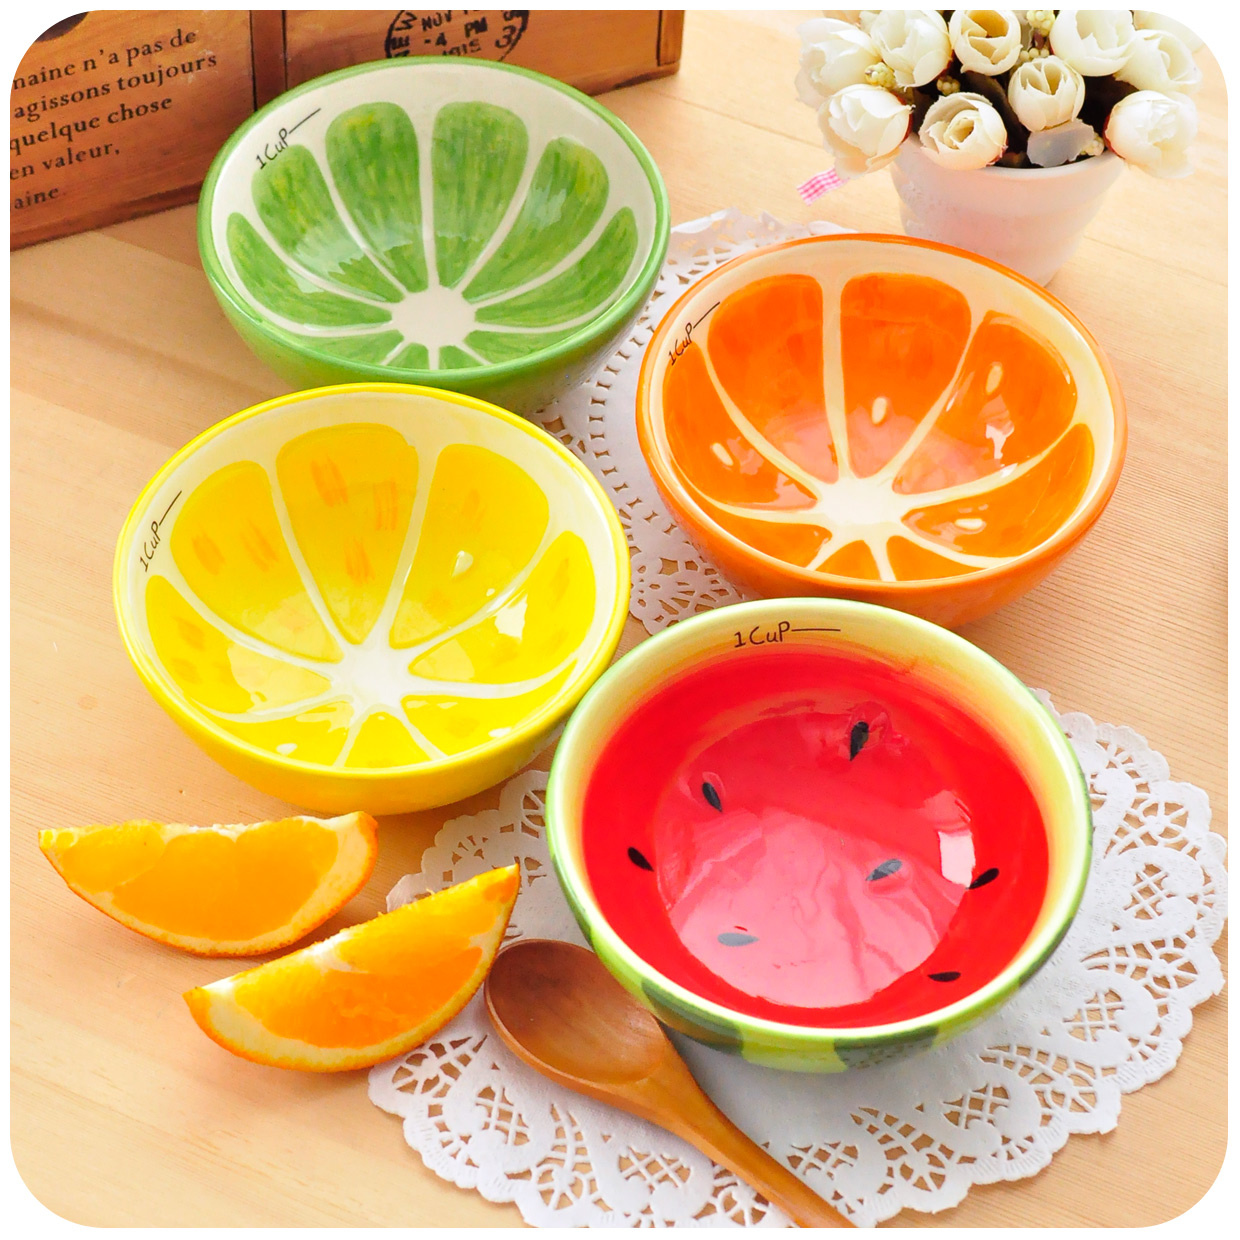 Hearts . glaze fruit ceramic rice bowl soup japanese style home 1pc - hotbuy's store